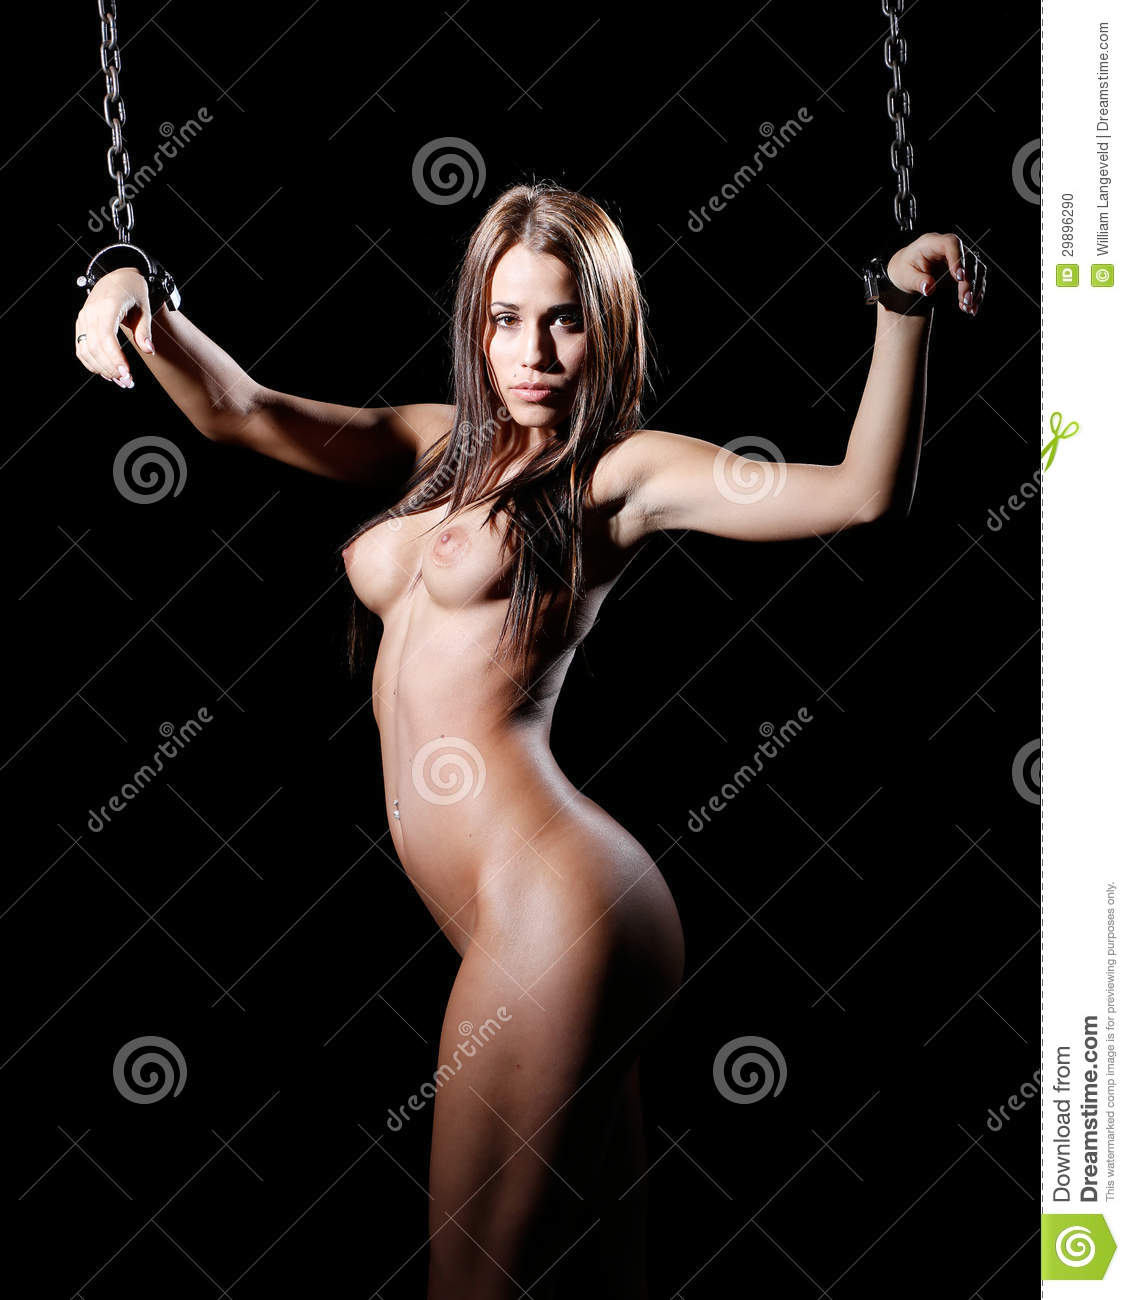 Bondage Art Style With Nude Or Naked Woman Tied Up With -1085